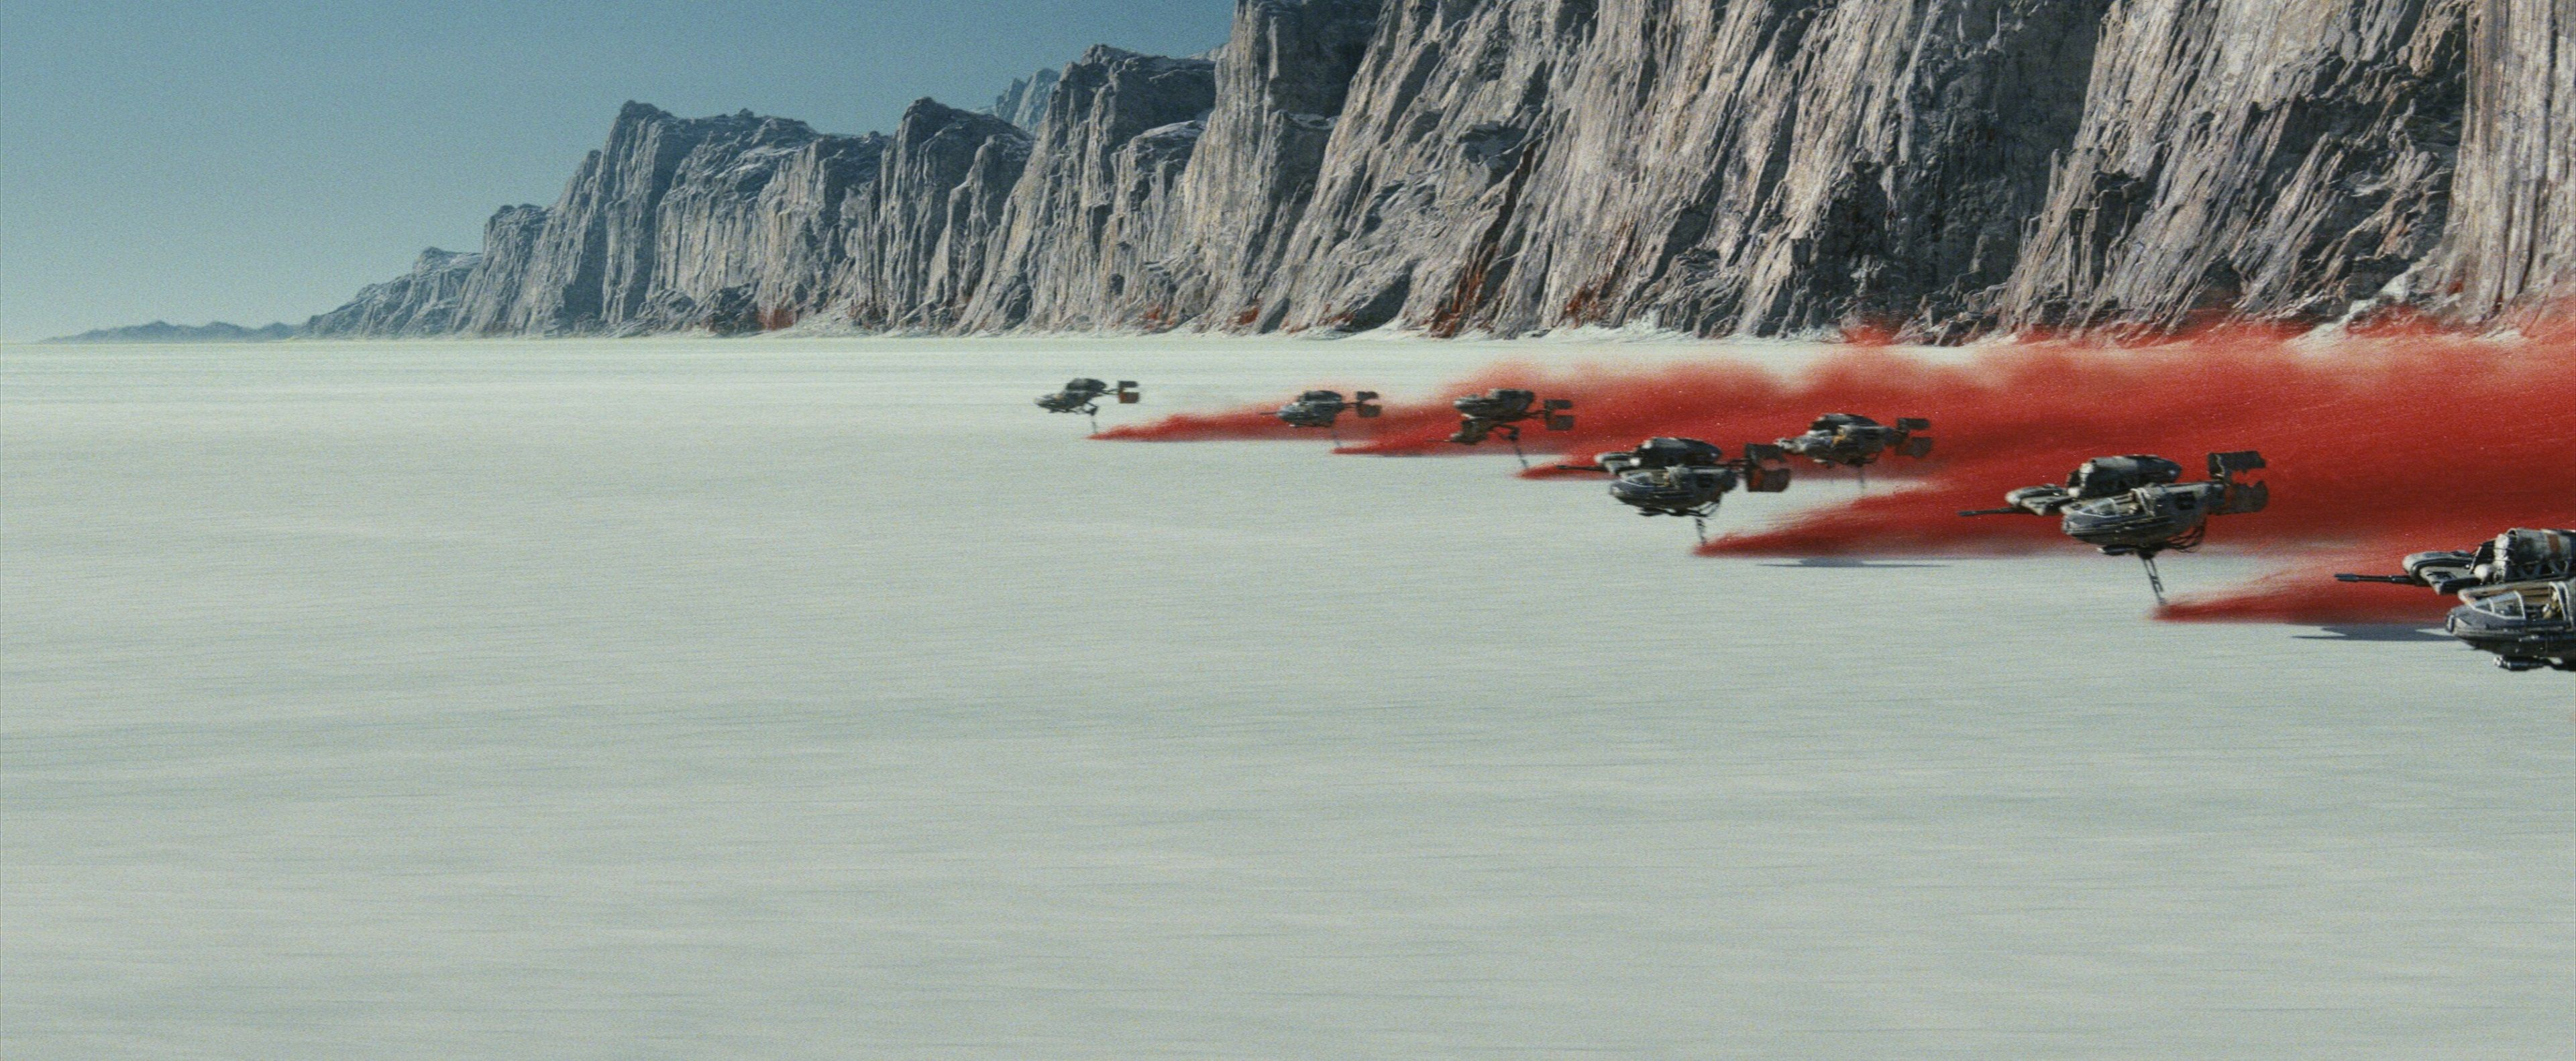 3840x1581 Star Wars The Last Jedi 4k Desktop Hd Wallpaper Film